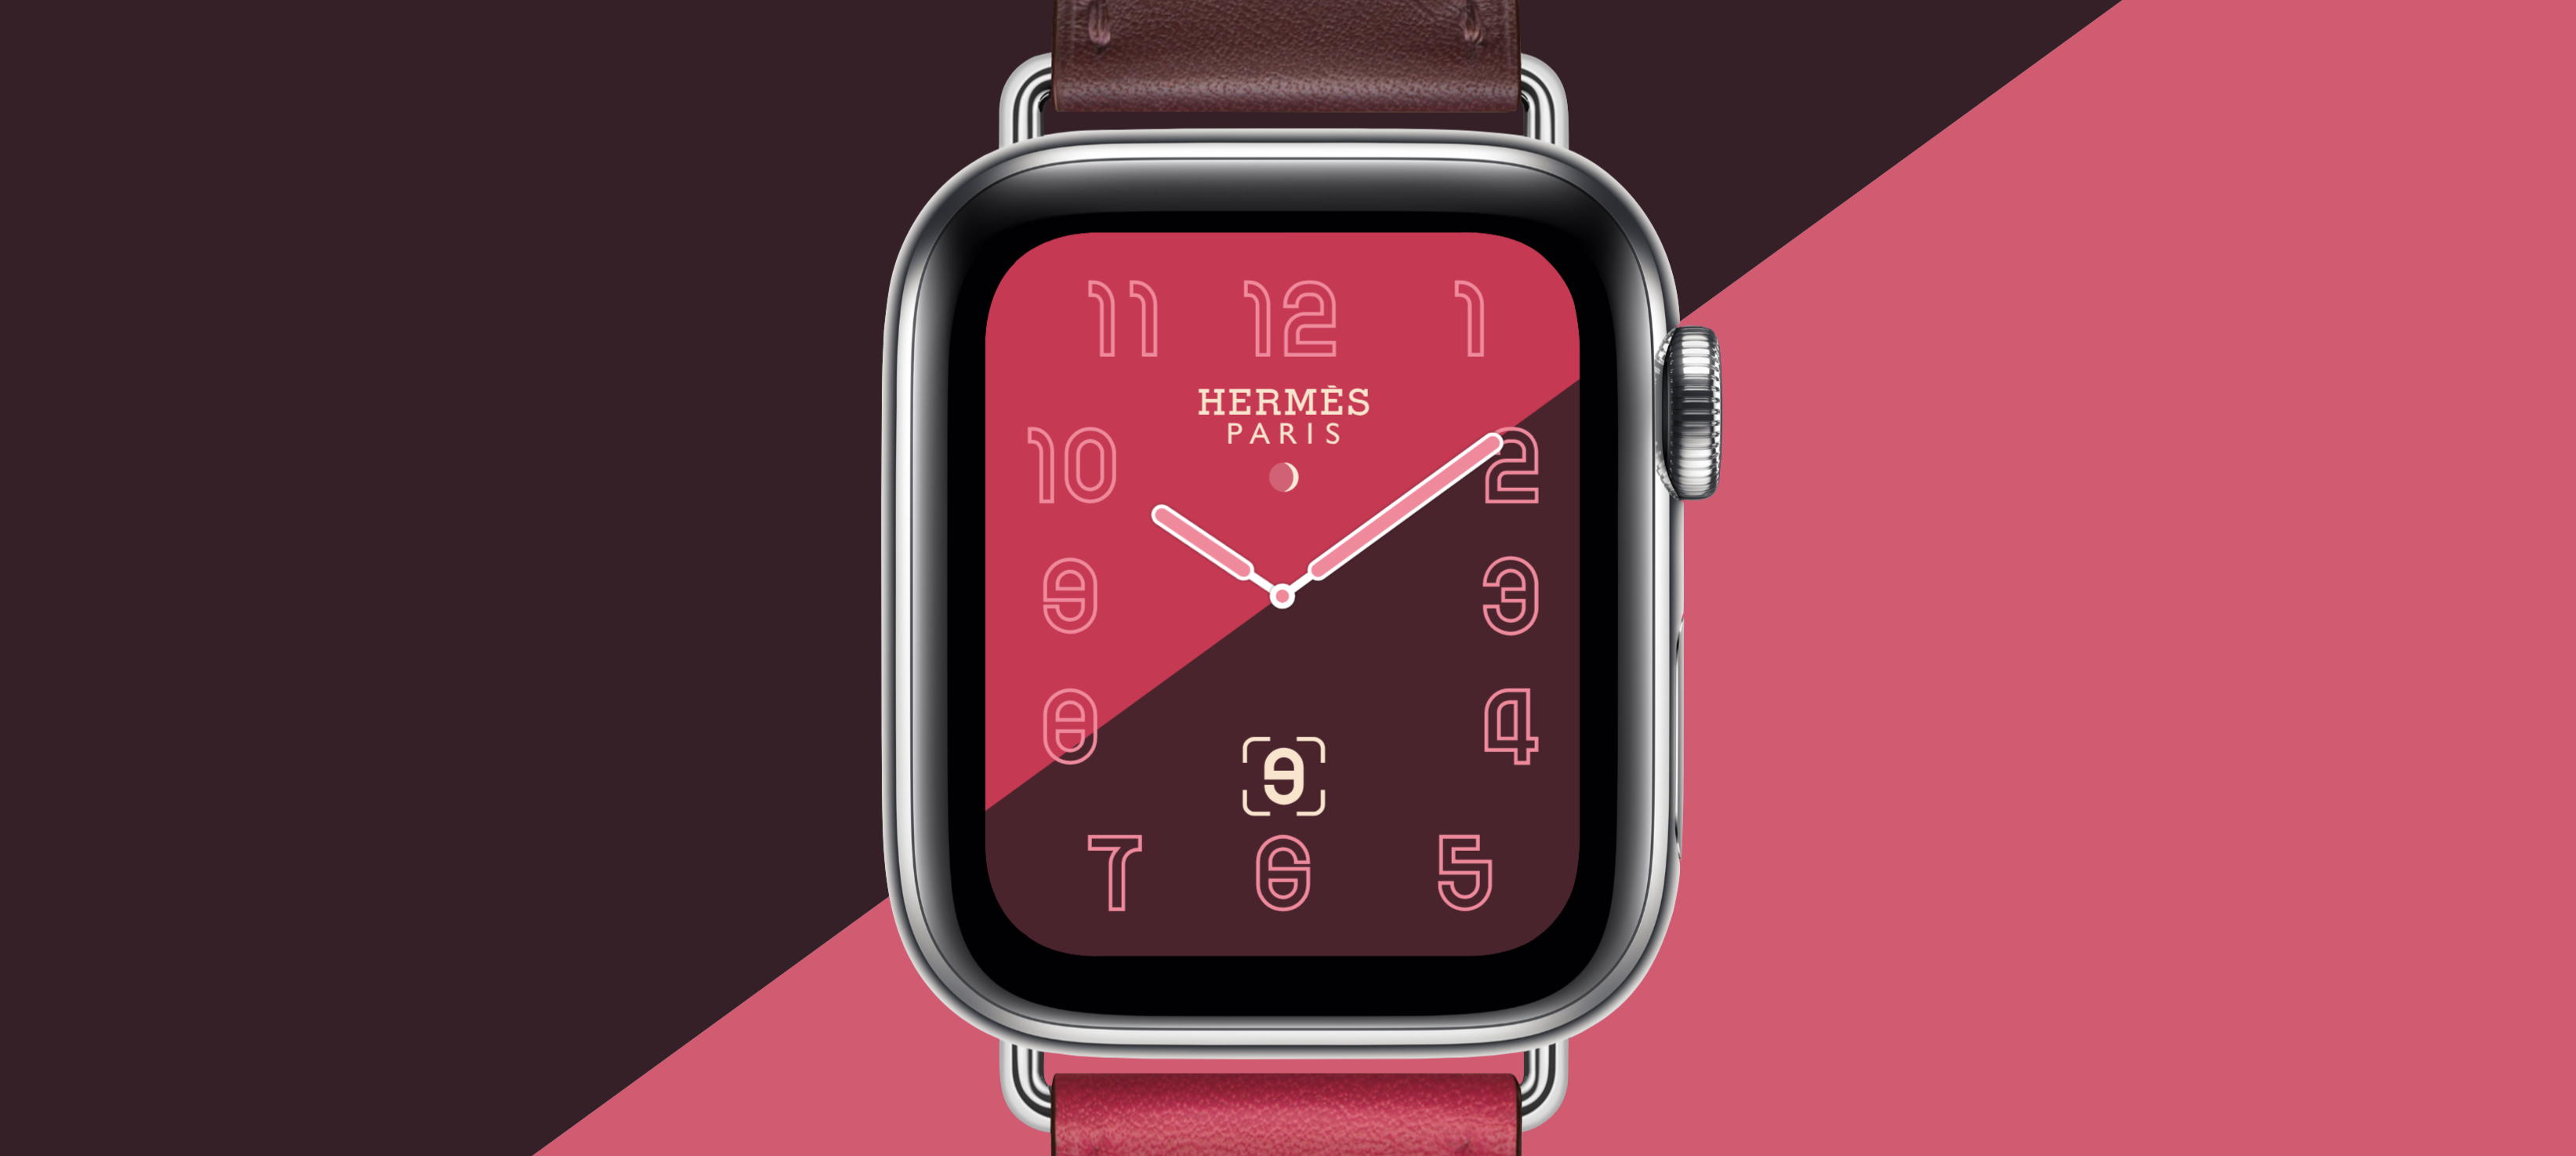 6af3c17f162a Apple Watch Hermès collection gets new color-blocked faces and bands ...